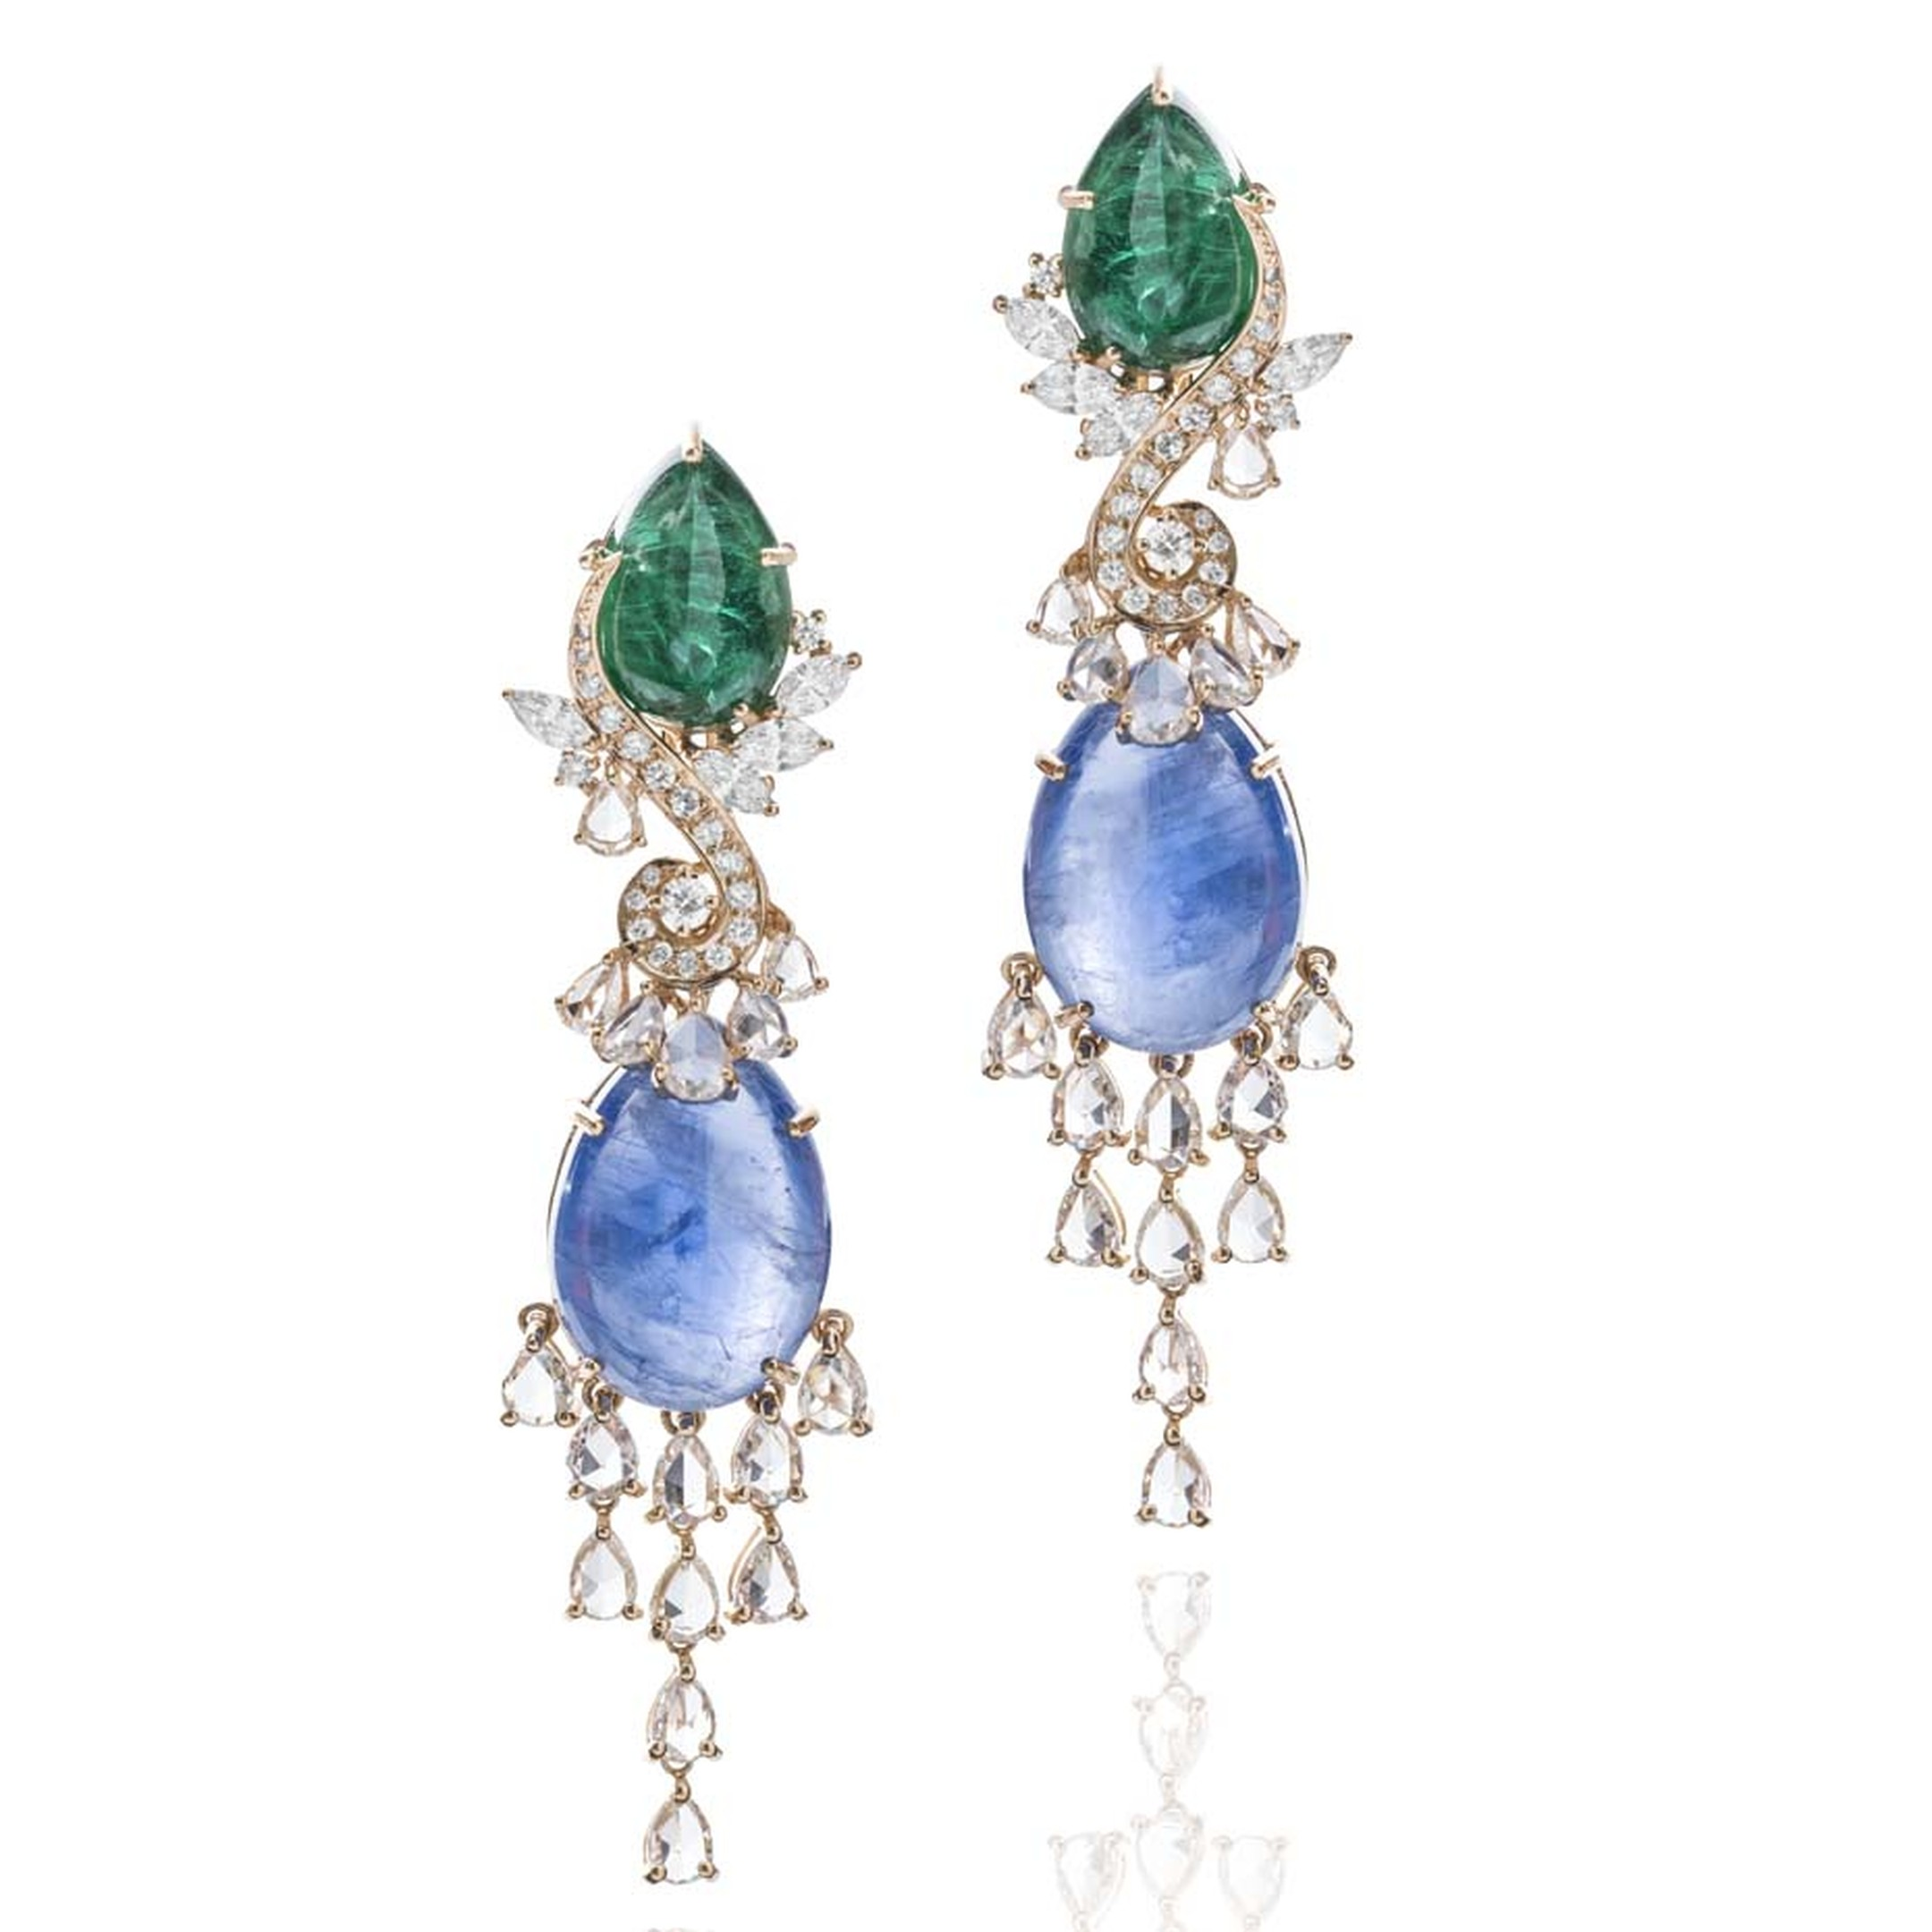 Fahra Khan_Le Jardin Exotique_A stunning pair of emerald, blue sapphire and diamond earrings in 18ct yellow gold by Farah Khan jewellery.jpg